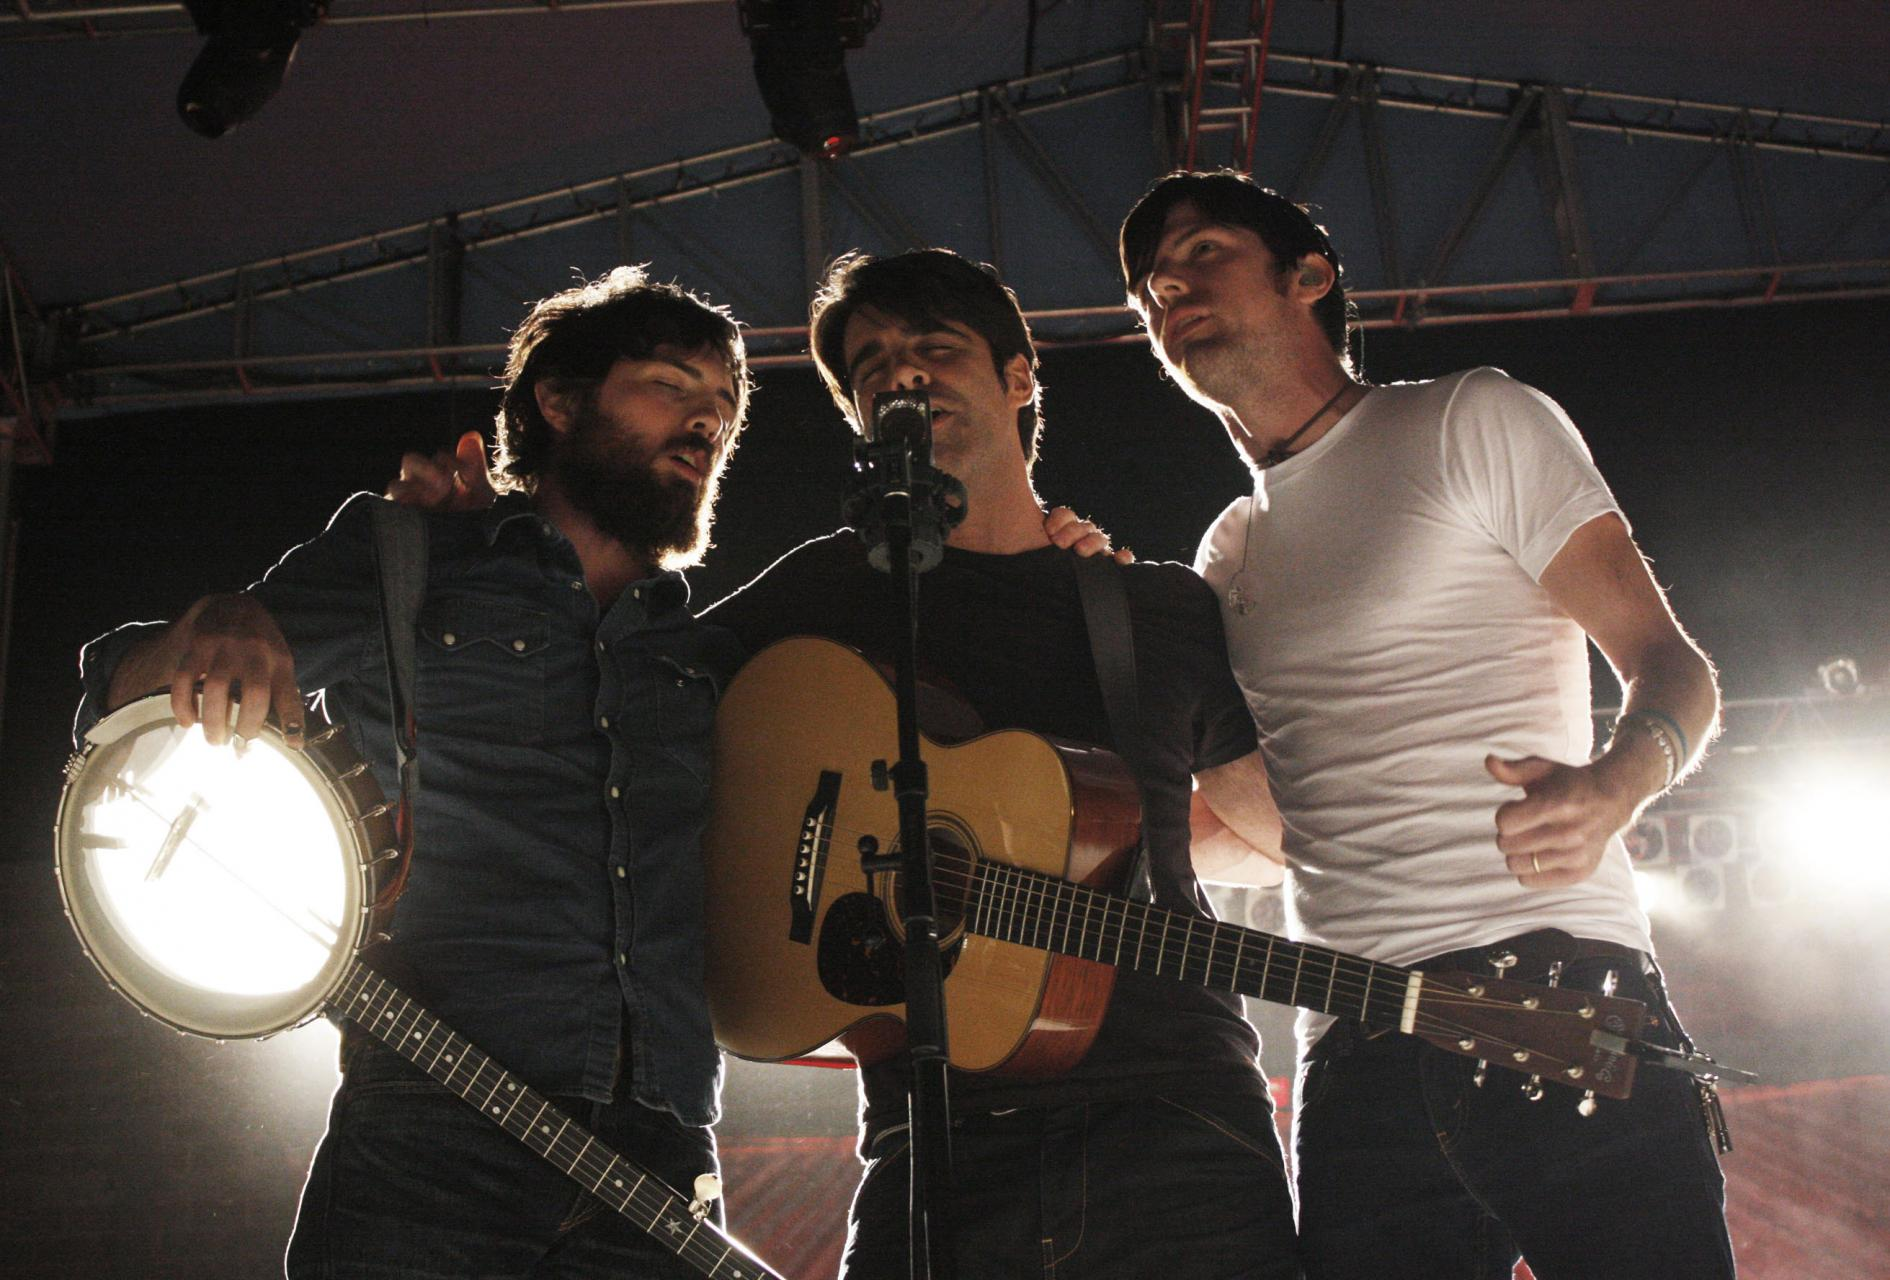 Photo of The Avett Brothers by Daniel Coston